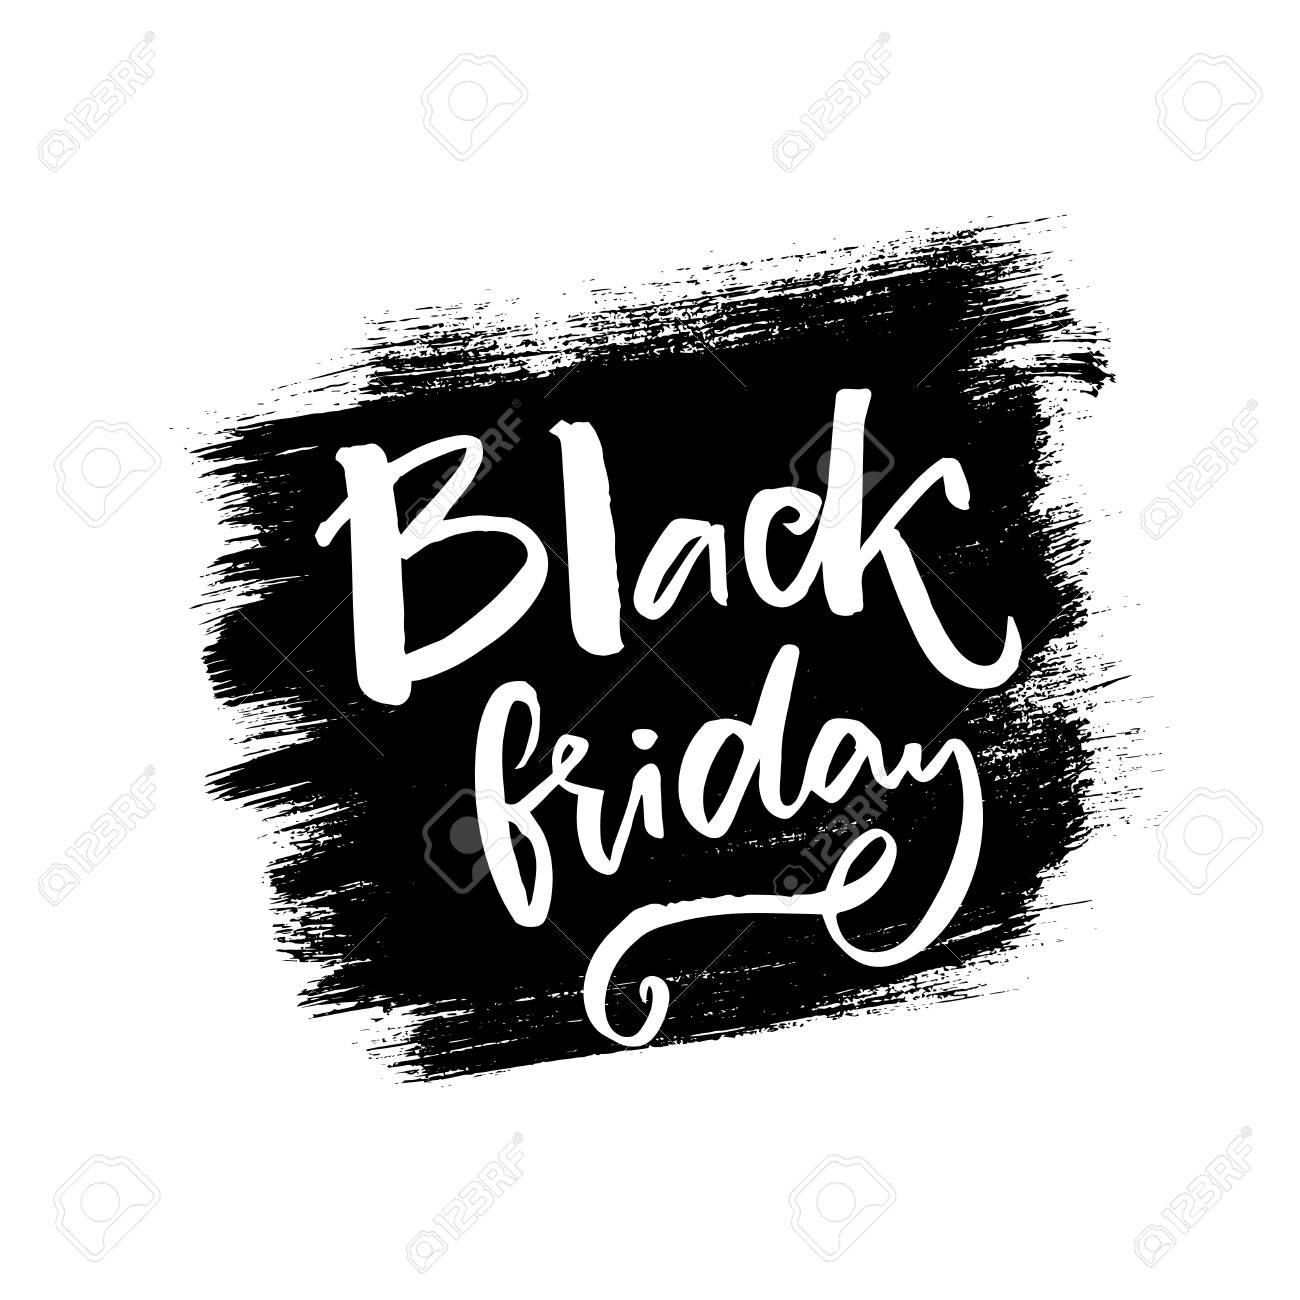 Black Friday Words On Black Ink Stain Grunge Sale Banner Vector Royalty Free Cliparts Vectors And Stock Illustration Image 68116969